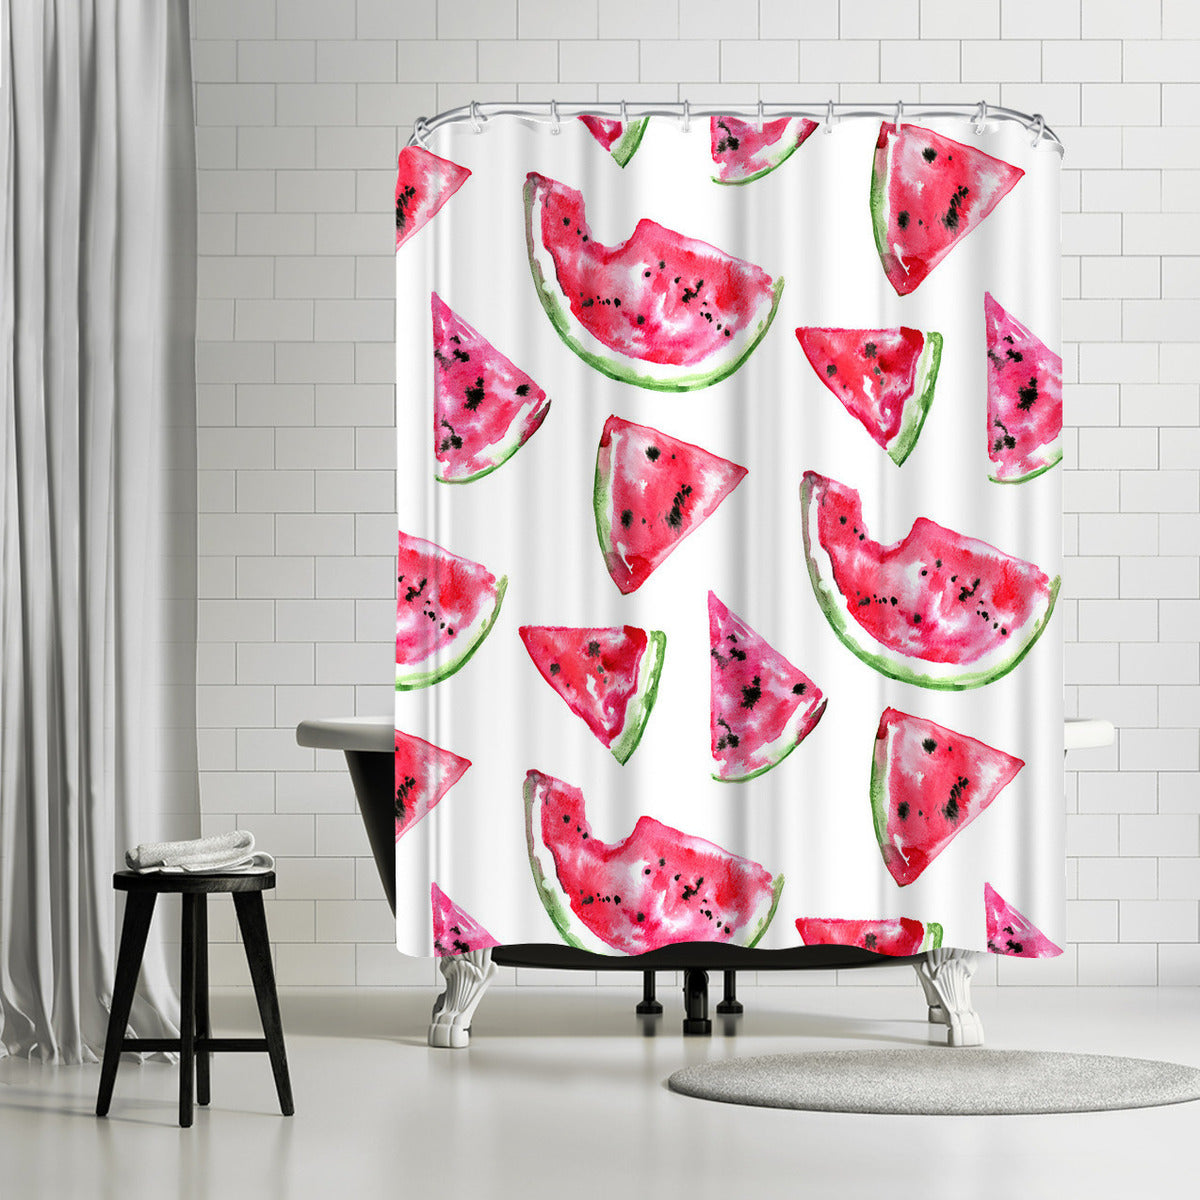 Watermelon Slice by Sam Nagel Shower Curtain -  - Americanflat